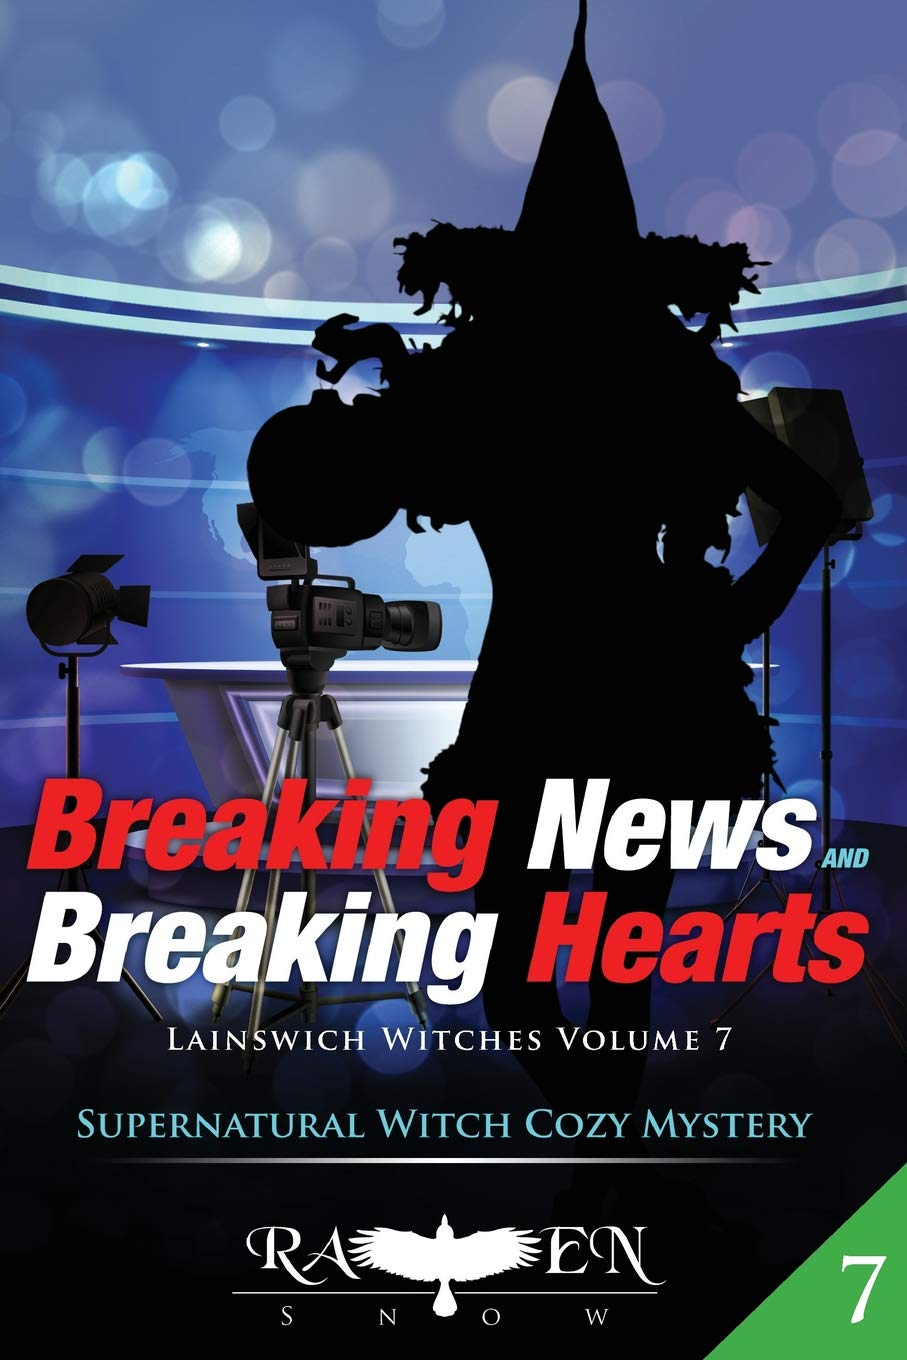 Download Breaking News and Breaking Hearts (Lainswich Witches Series) (Volume 7) PDF